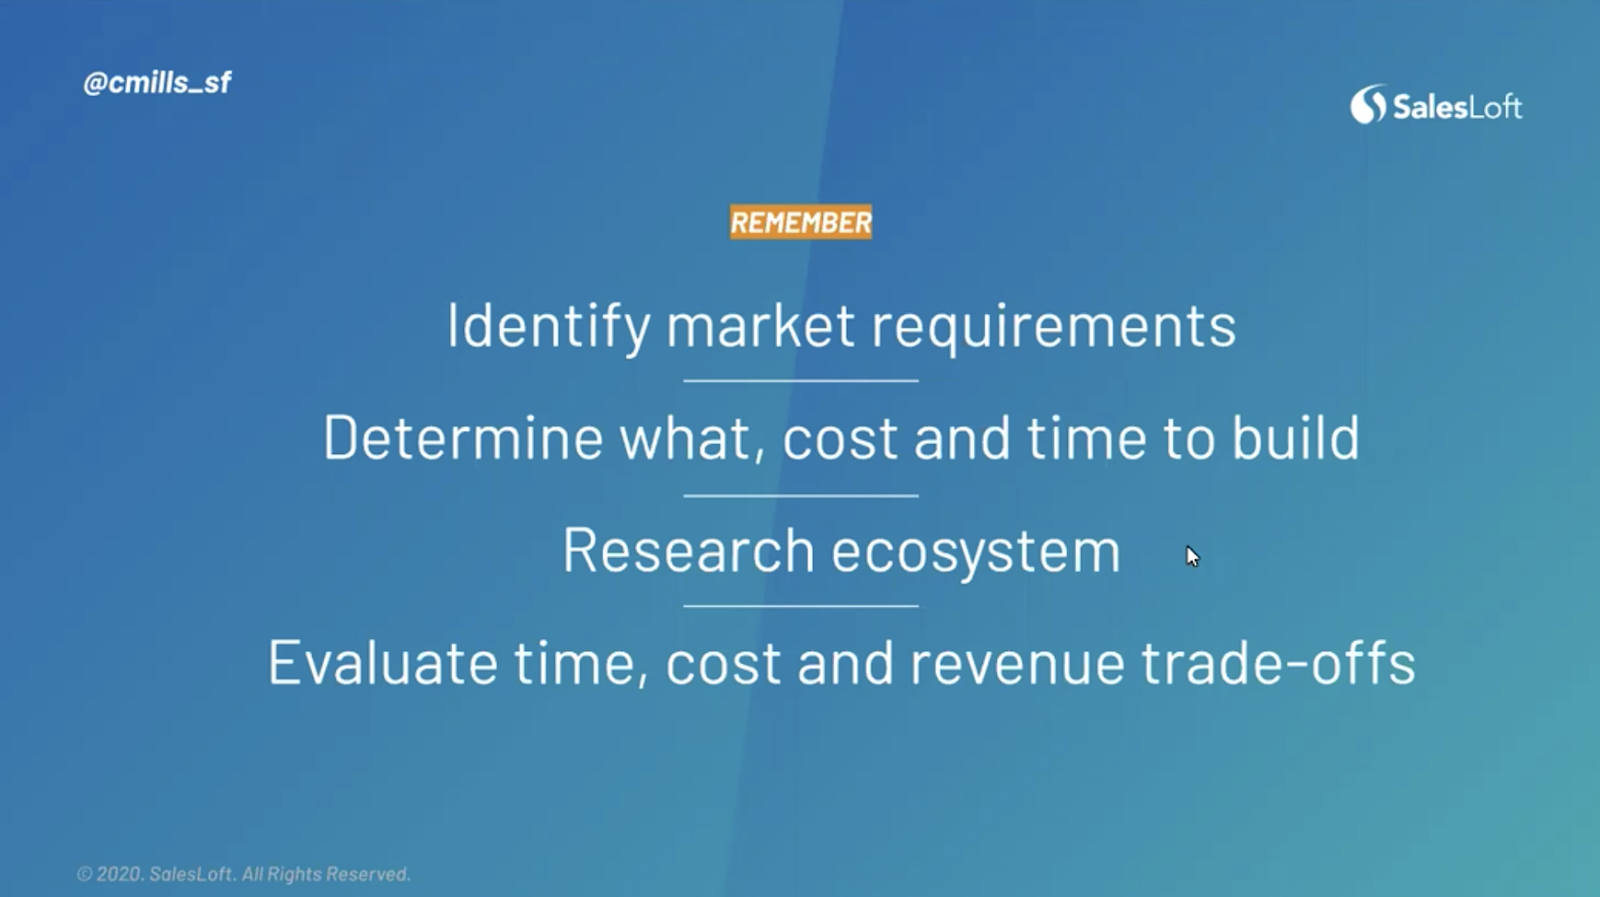 Identify market requirements, determine what, cost and time to build, research your ecosystem, and evaluate time, cost and revenue trade-offs.